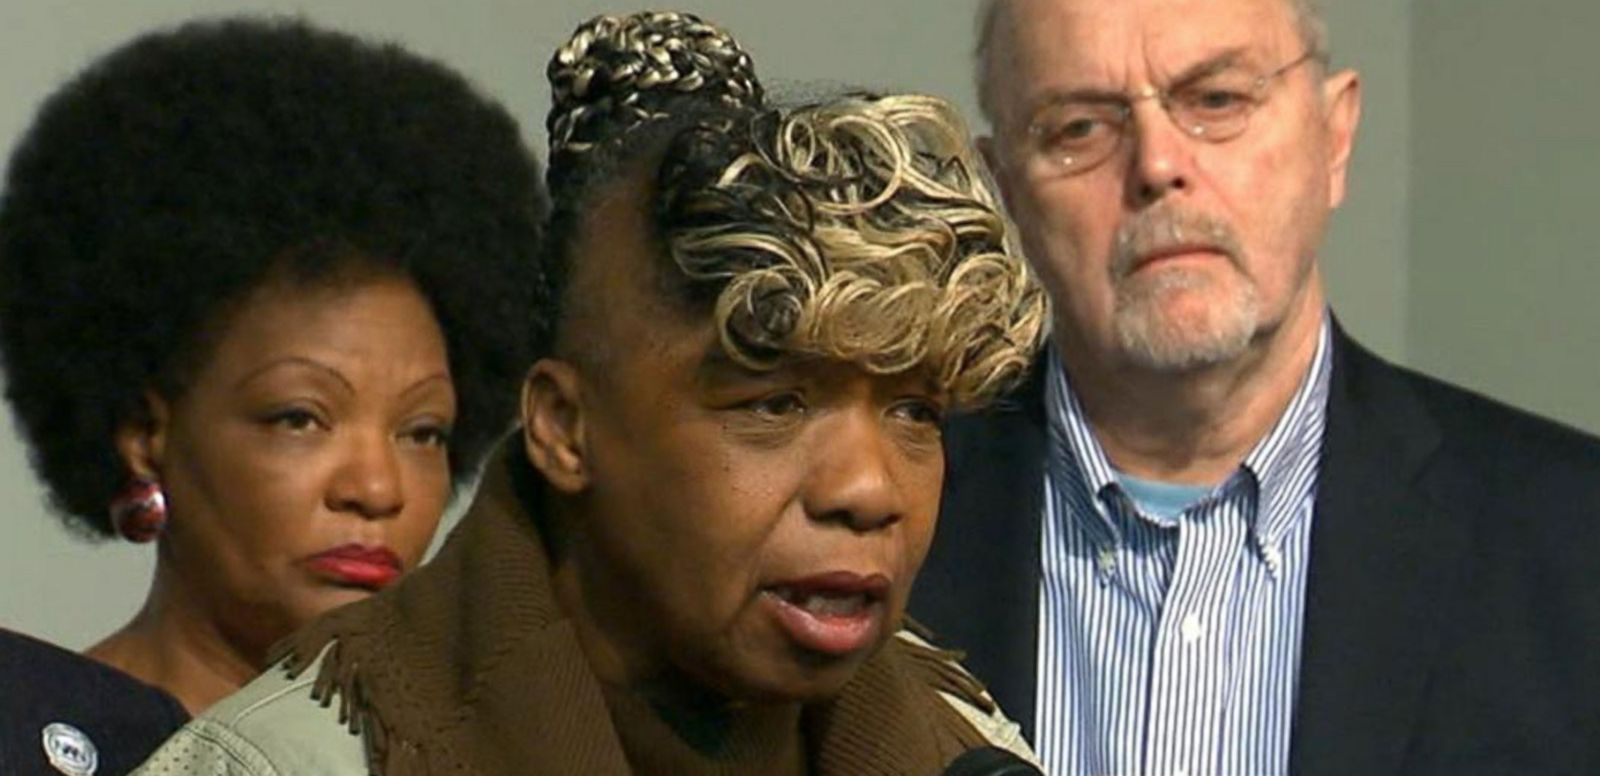 VIDEO: Eric Garner's Mother on Brooklyn Shooting: 'We Are Not About That'